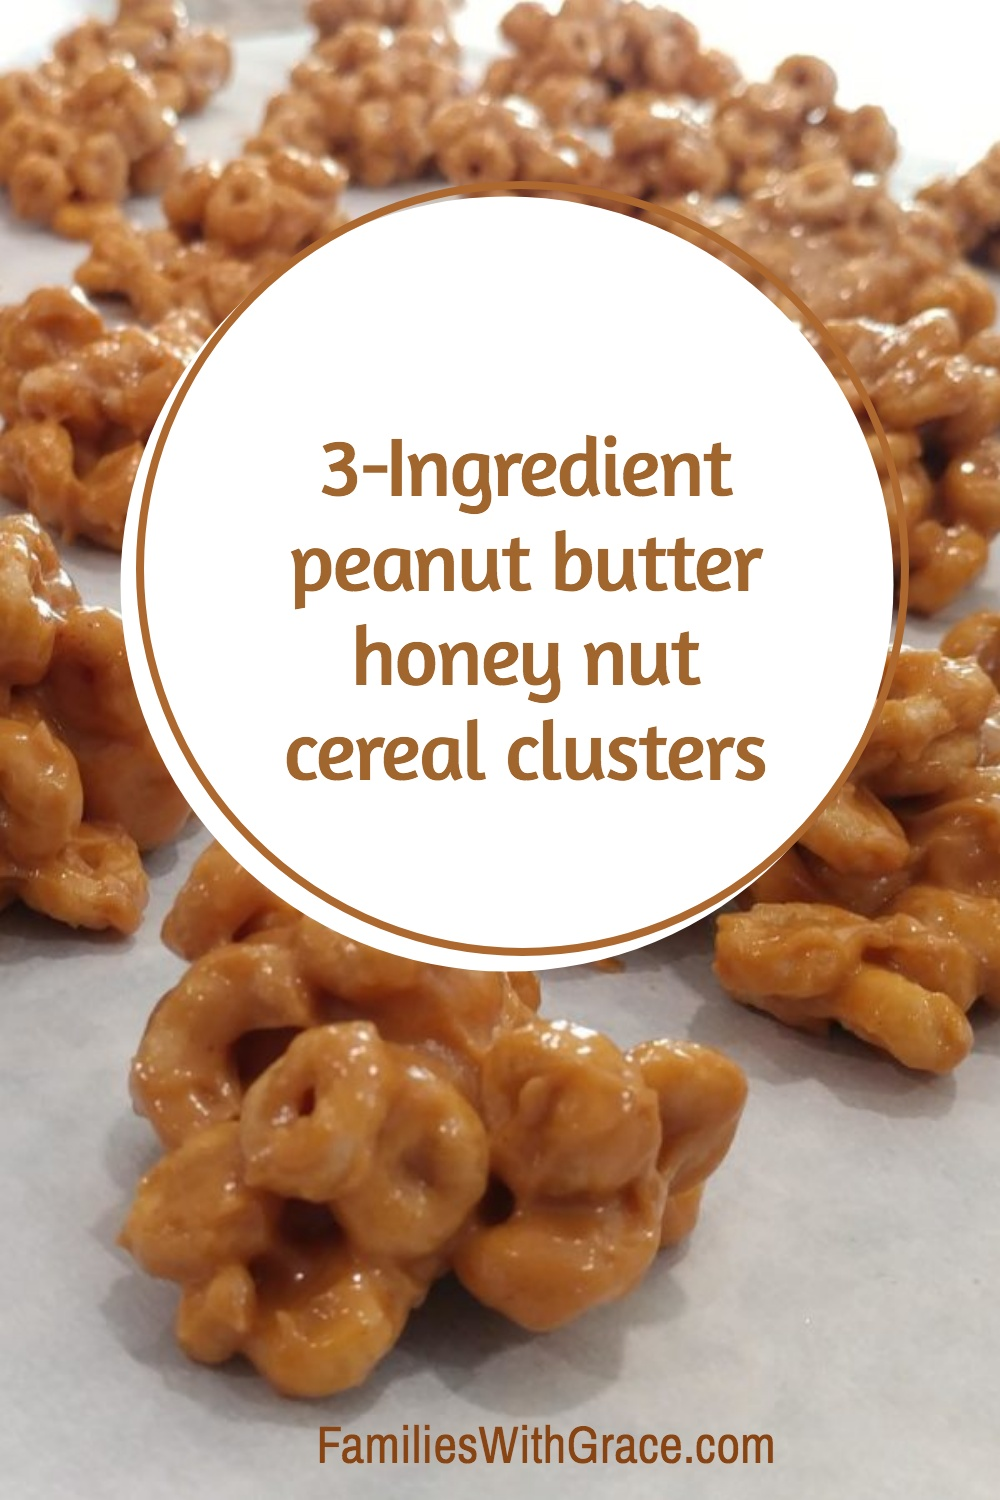 Peanut butter honey nut cereal clusters